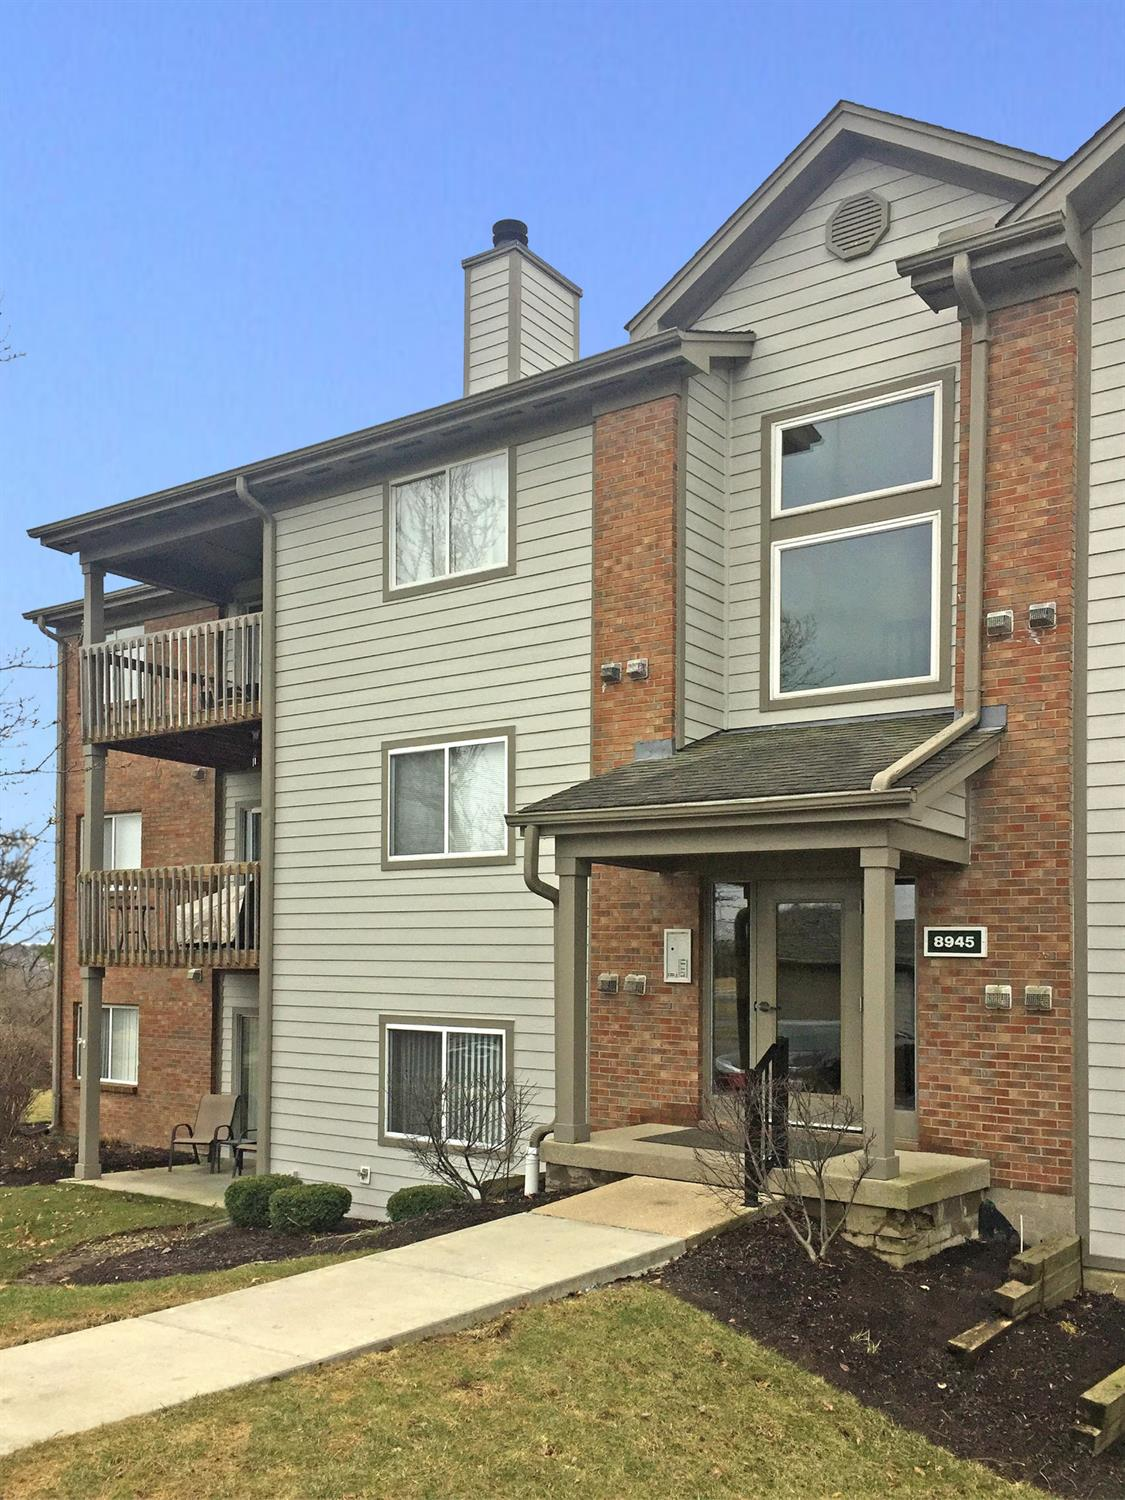 Property for sale at 8945 Eagleview Drive Unit: 8, West Chester,  Ohio 45069